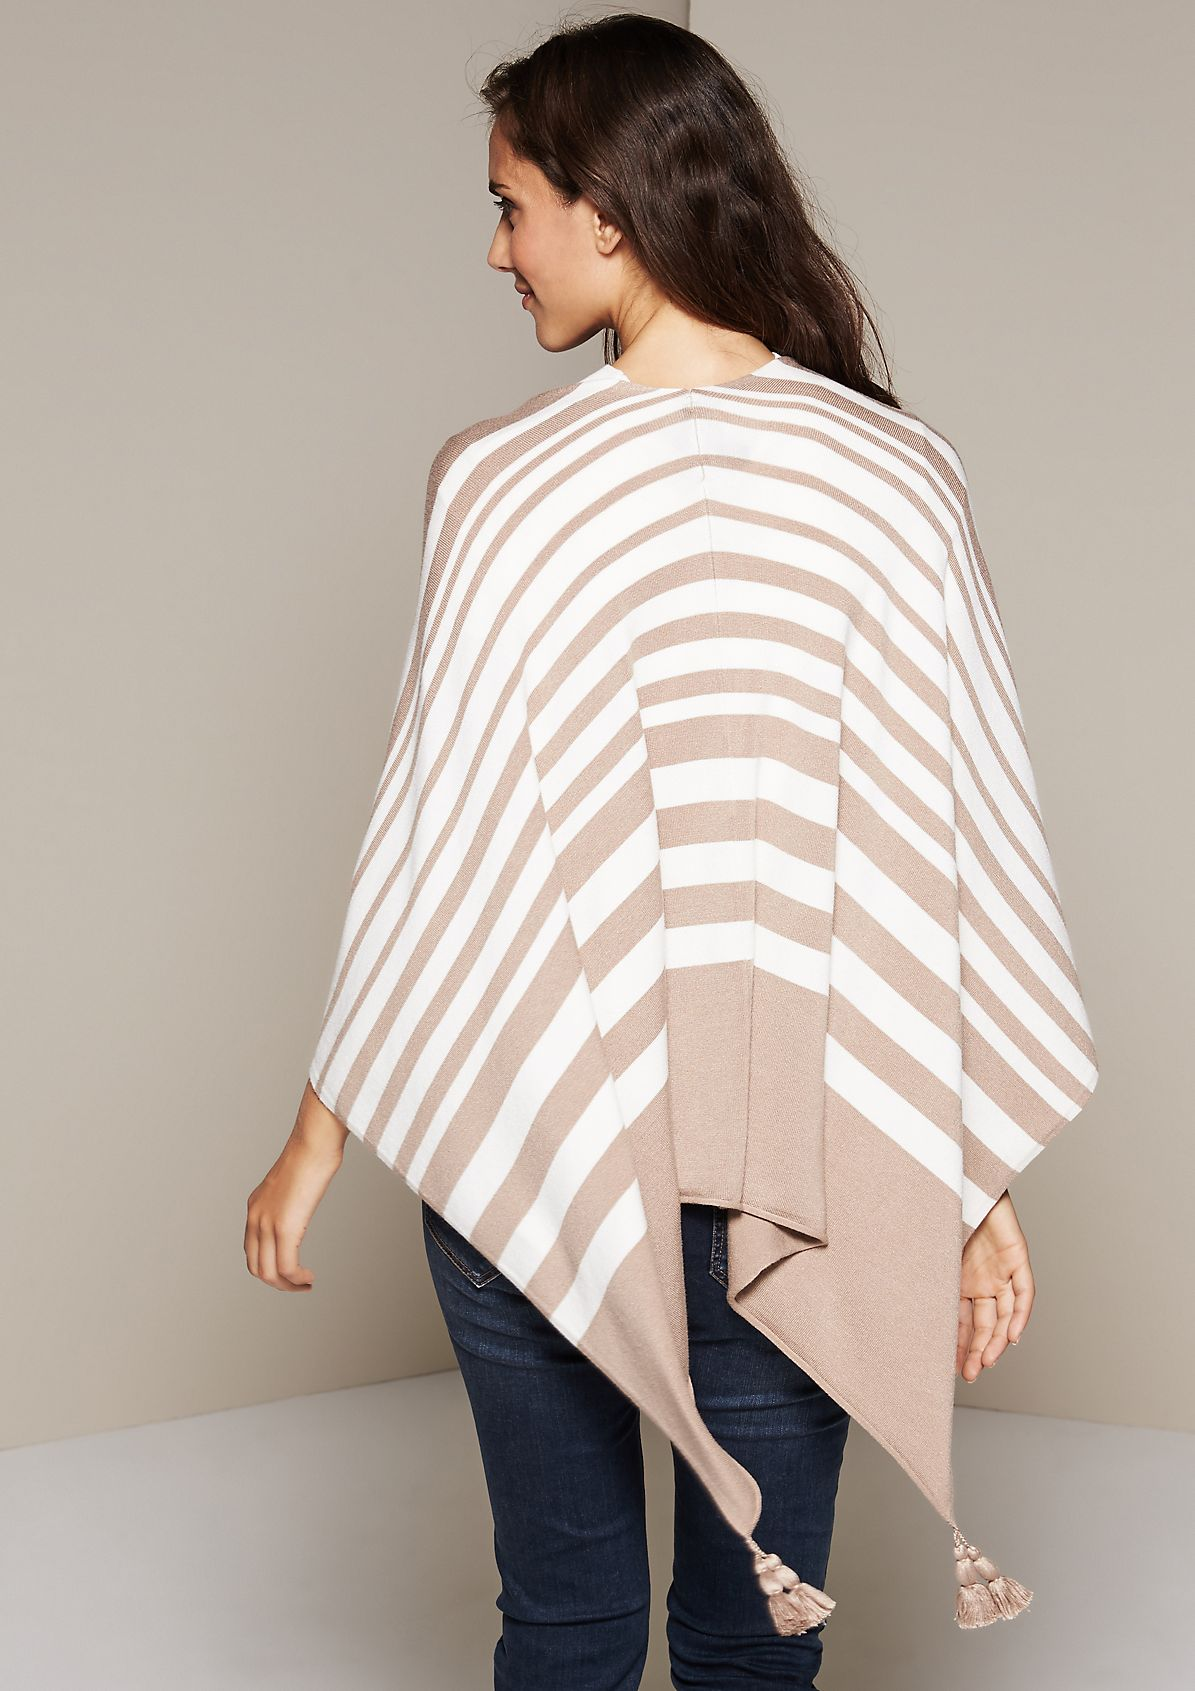 Lightweight knitted poncho with a beautiful striped pattern from s.Oliver